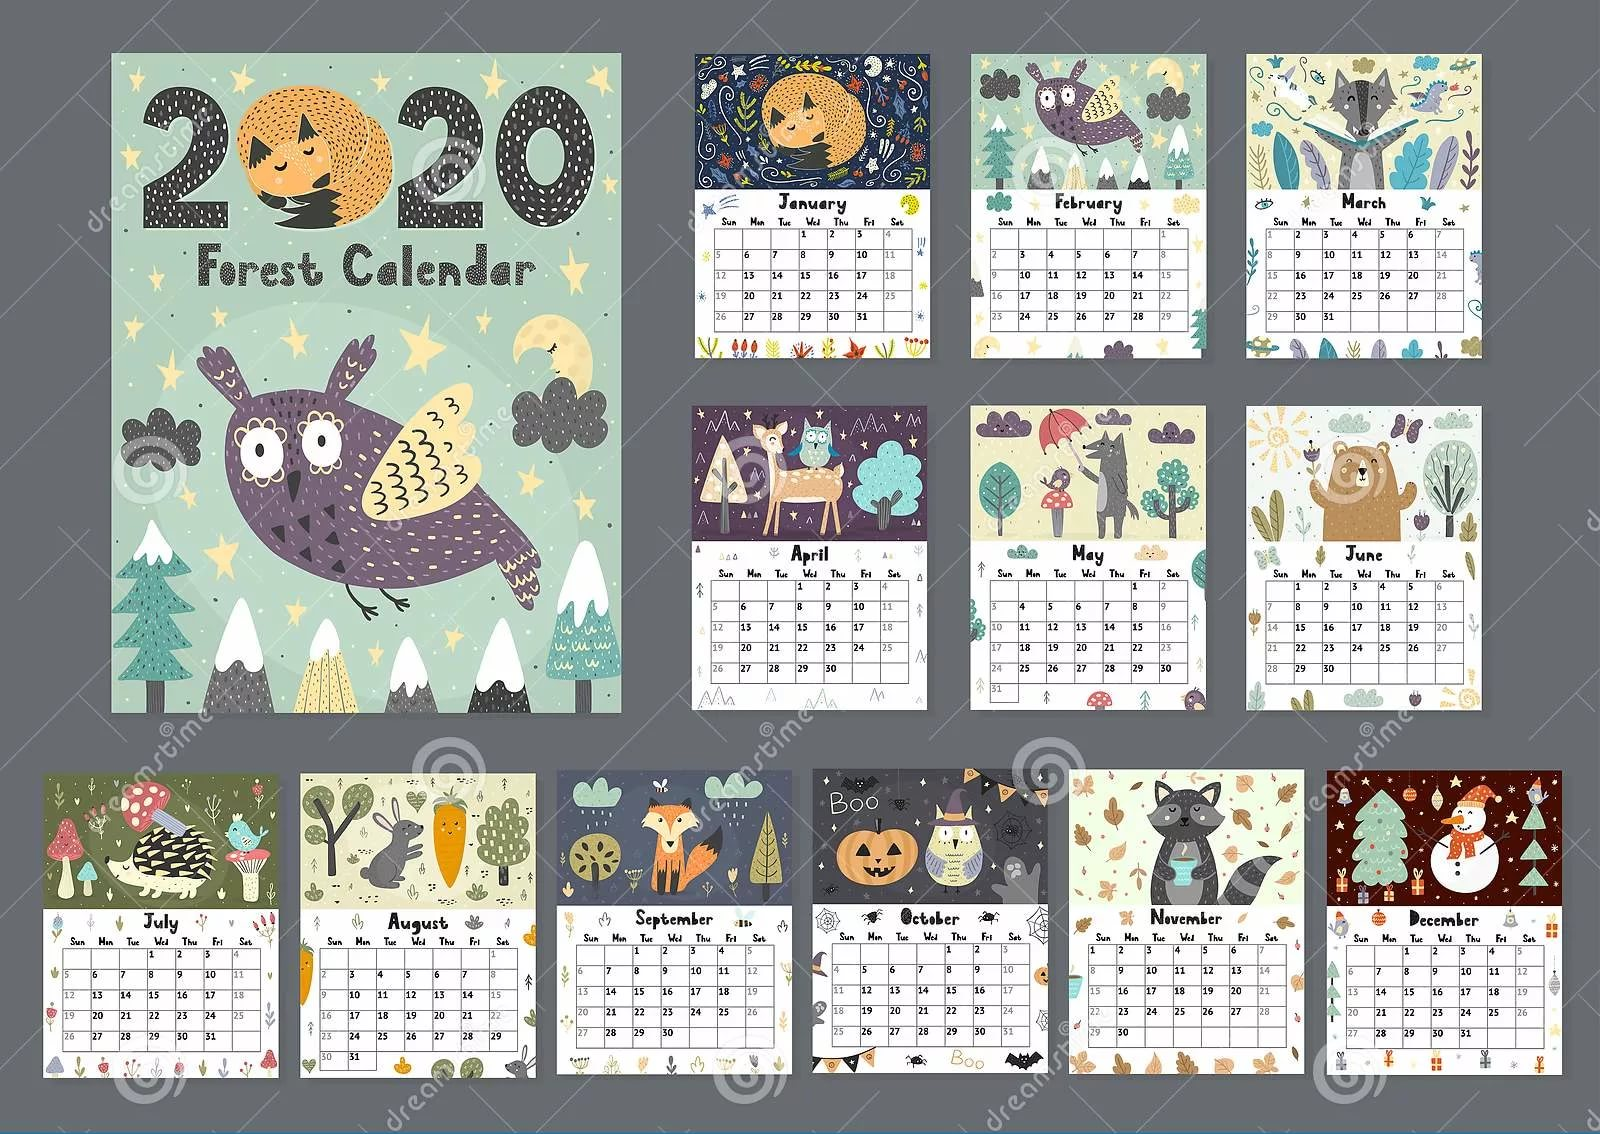 calendars_riofrioprint_orig (3).